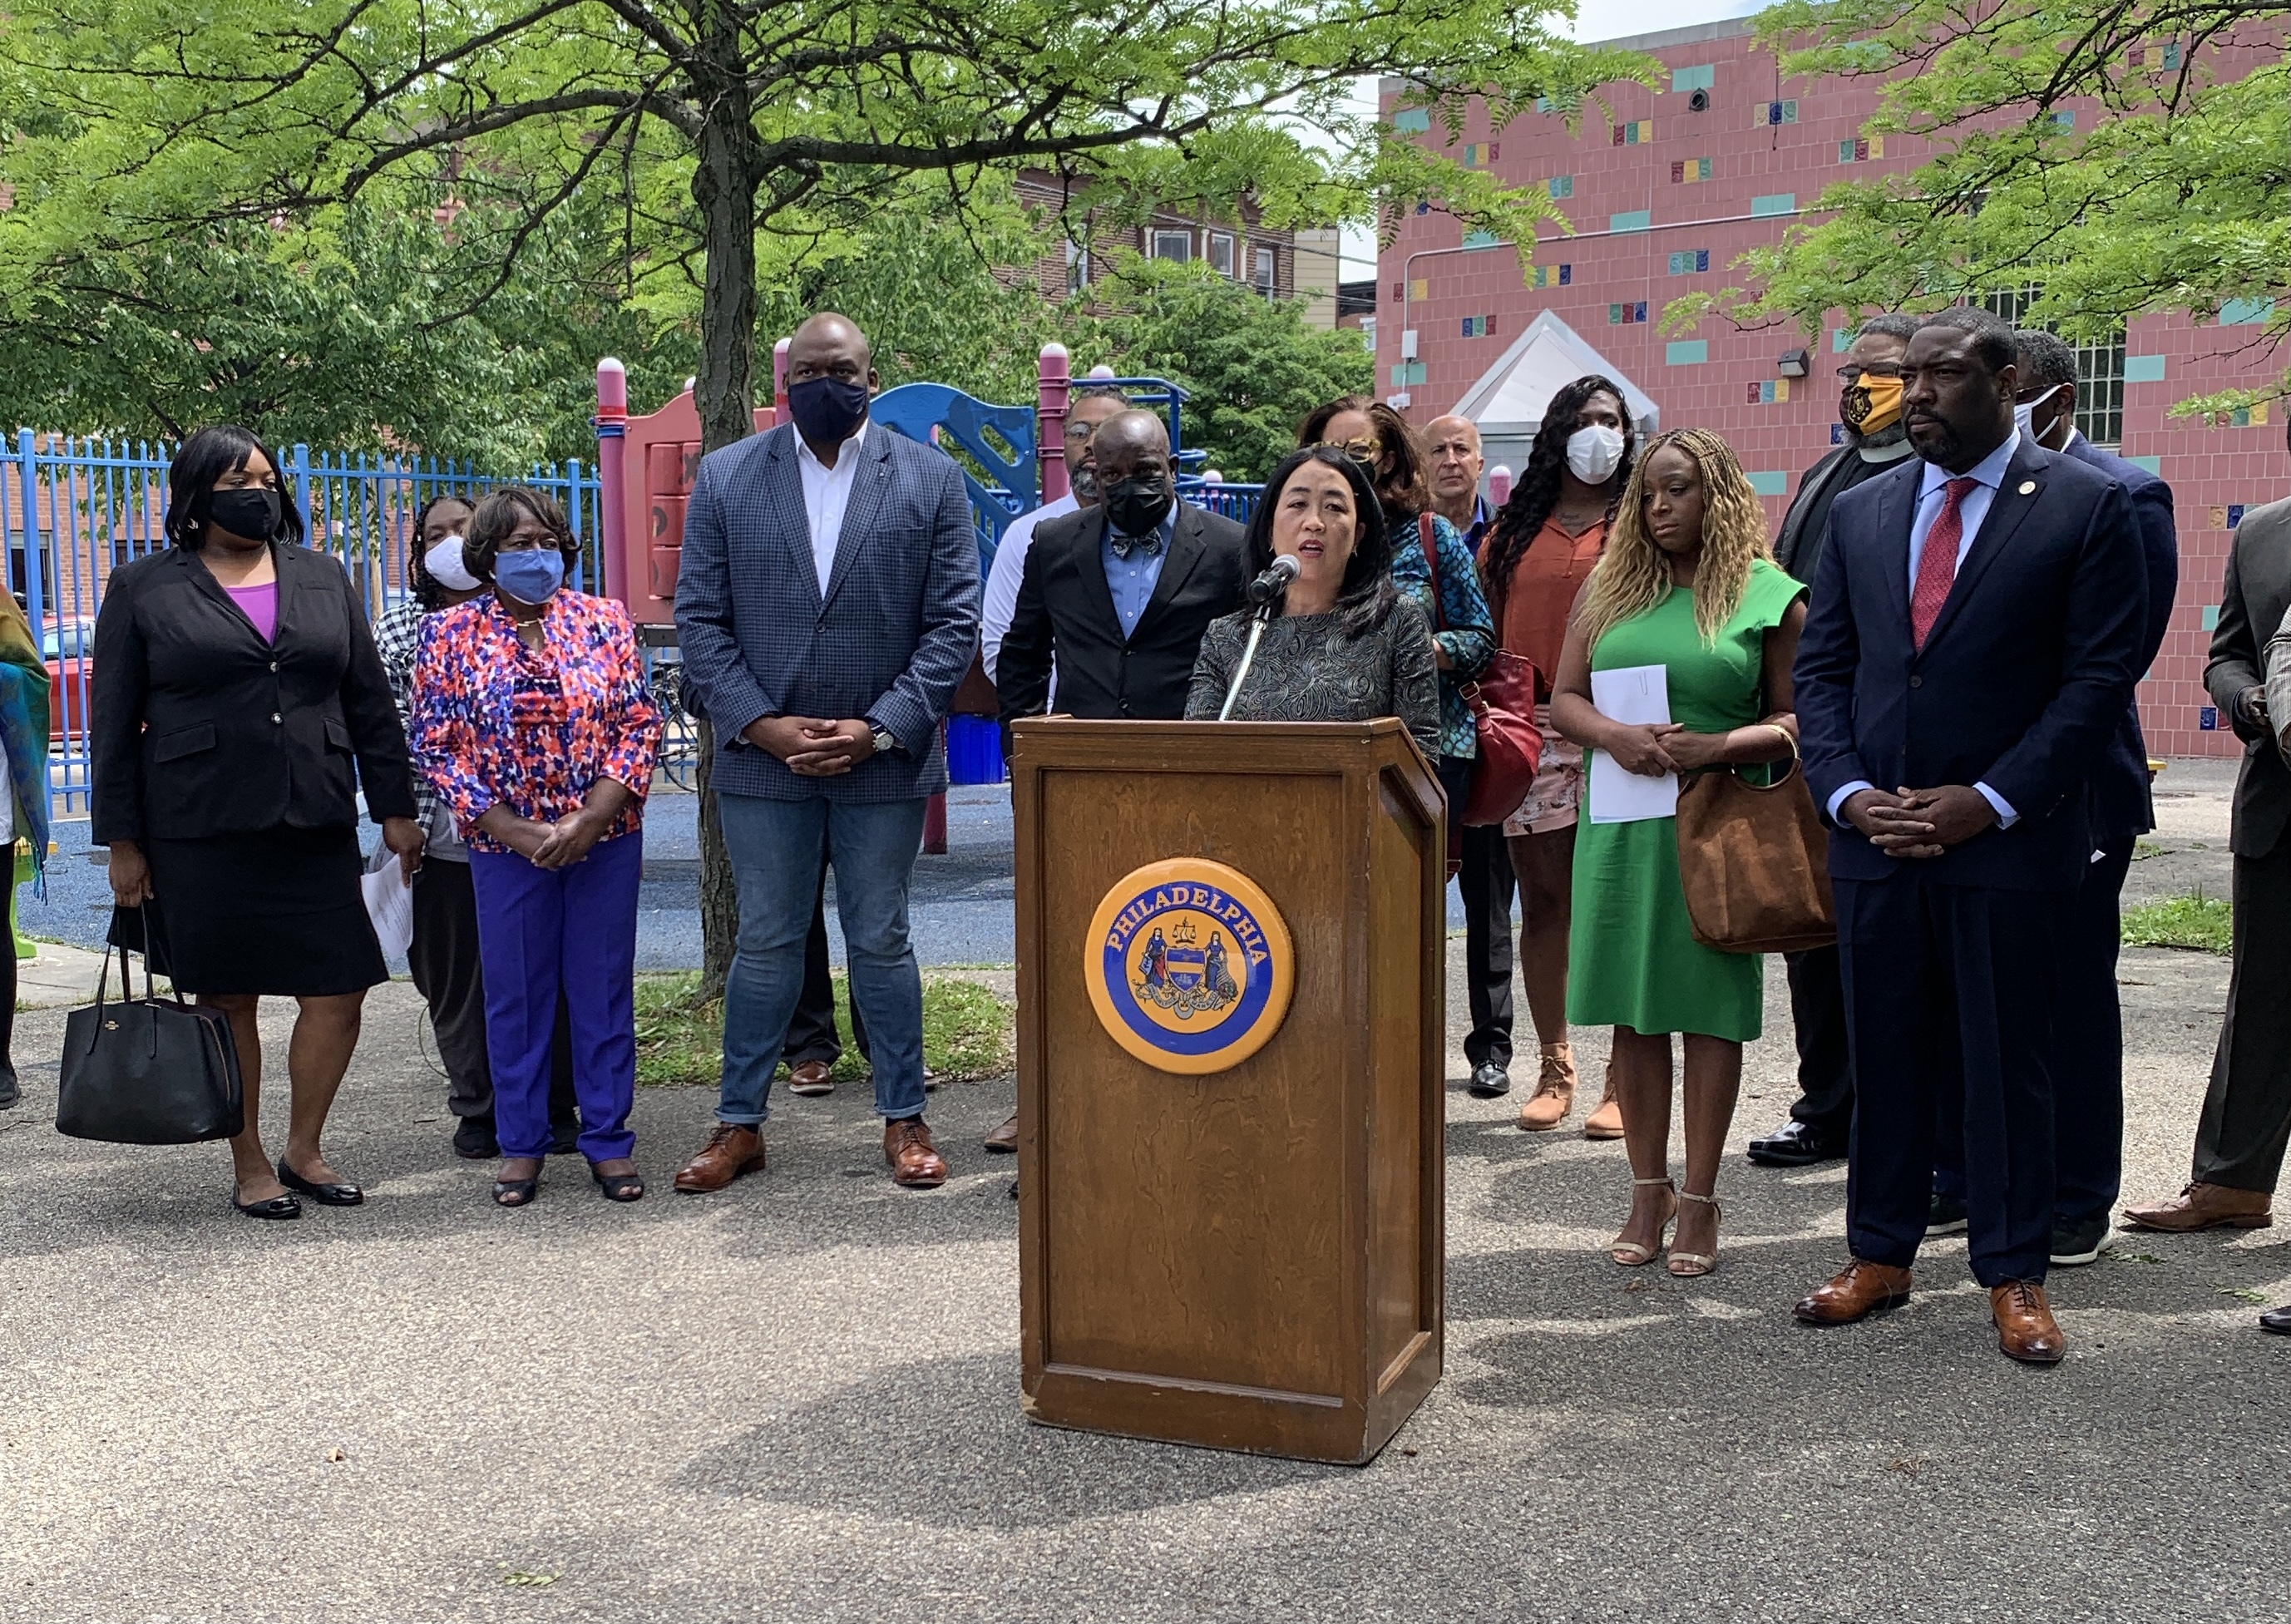 Council member Helen Gym is standing at a lectern outside and is surroundedby several other council members, community and religious leaders.